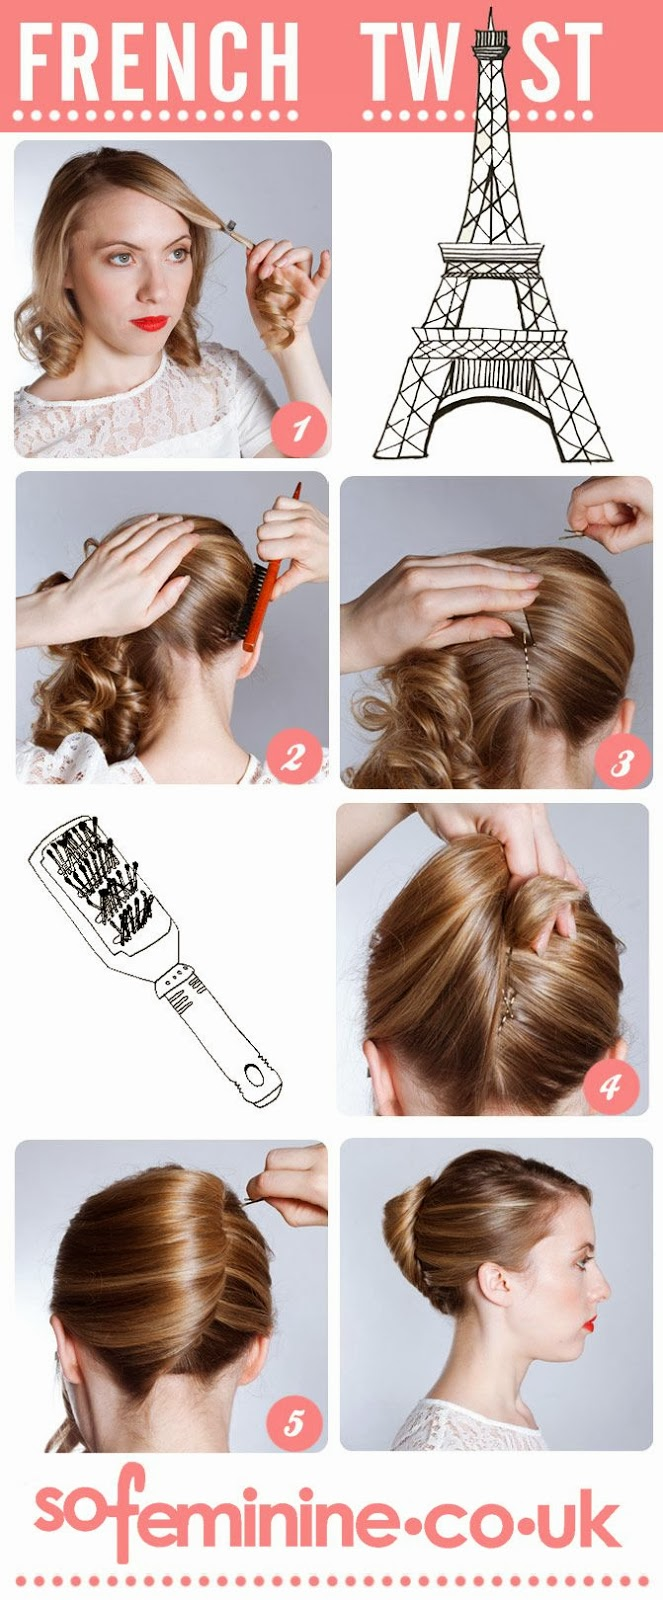 http://www.sofeminine.co.uk/hair/how-to-do-a-french-twist-som2094.html